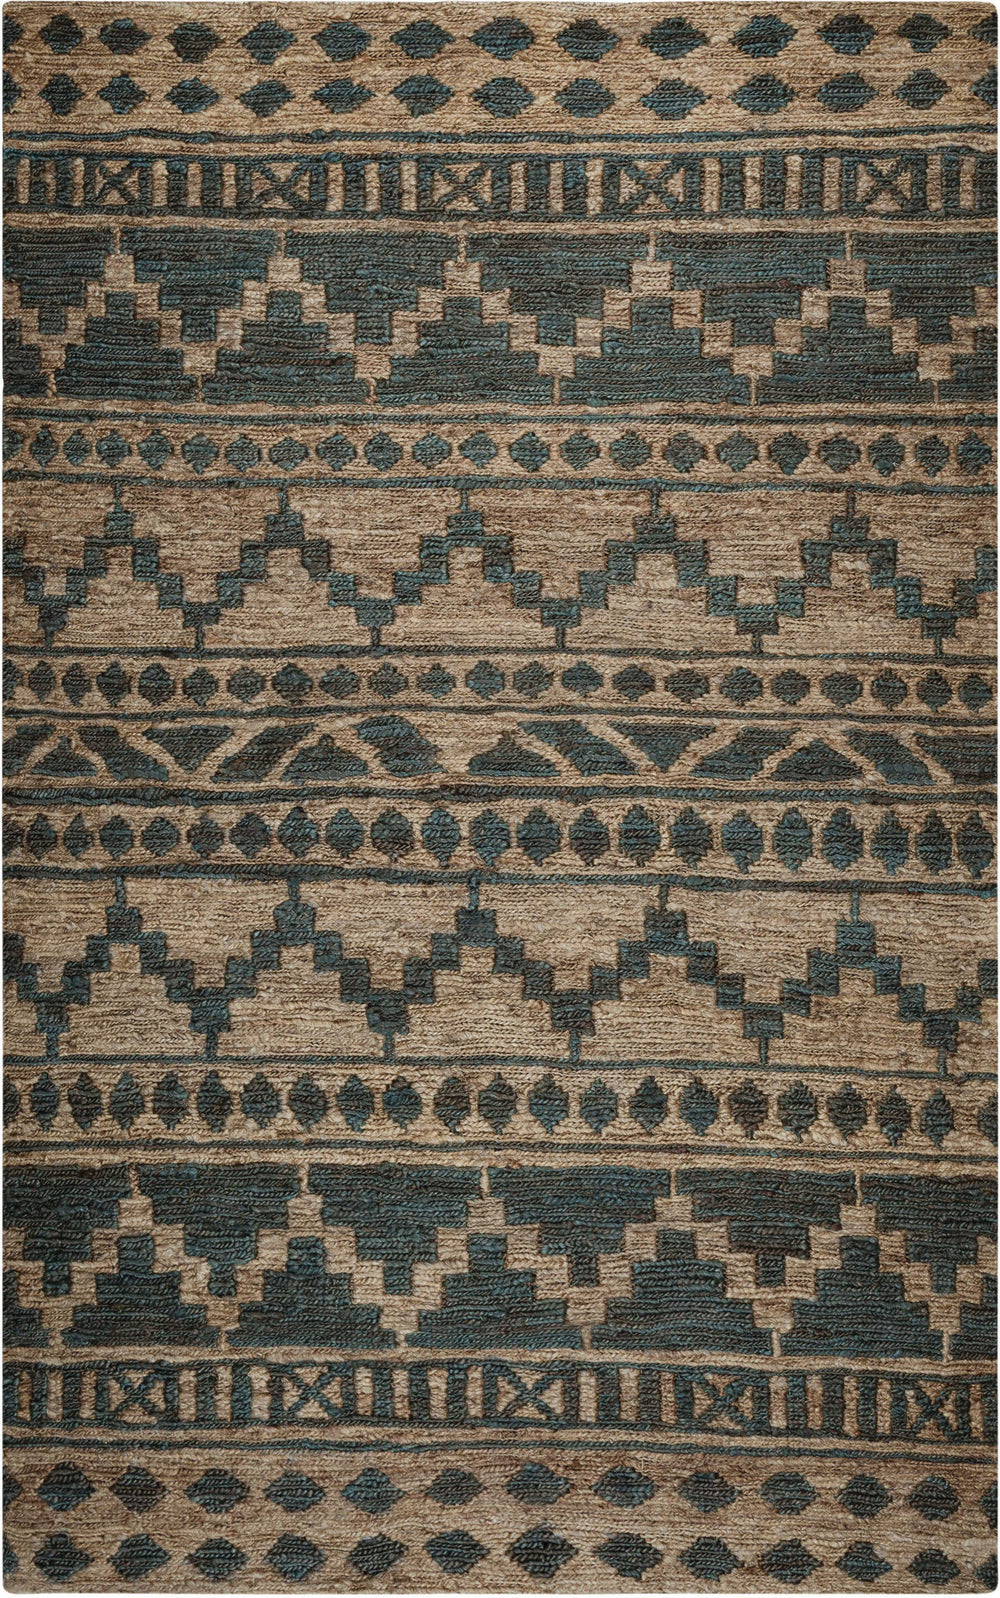 Rizzy Whittier WR9627 Area Rug